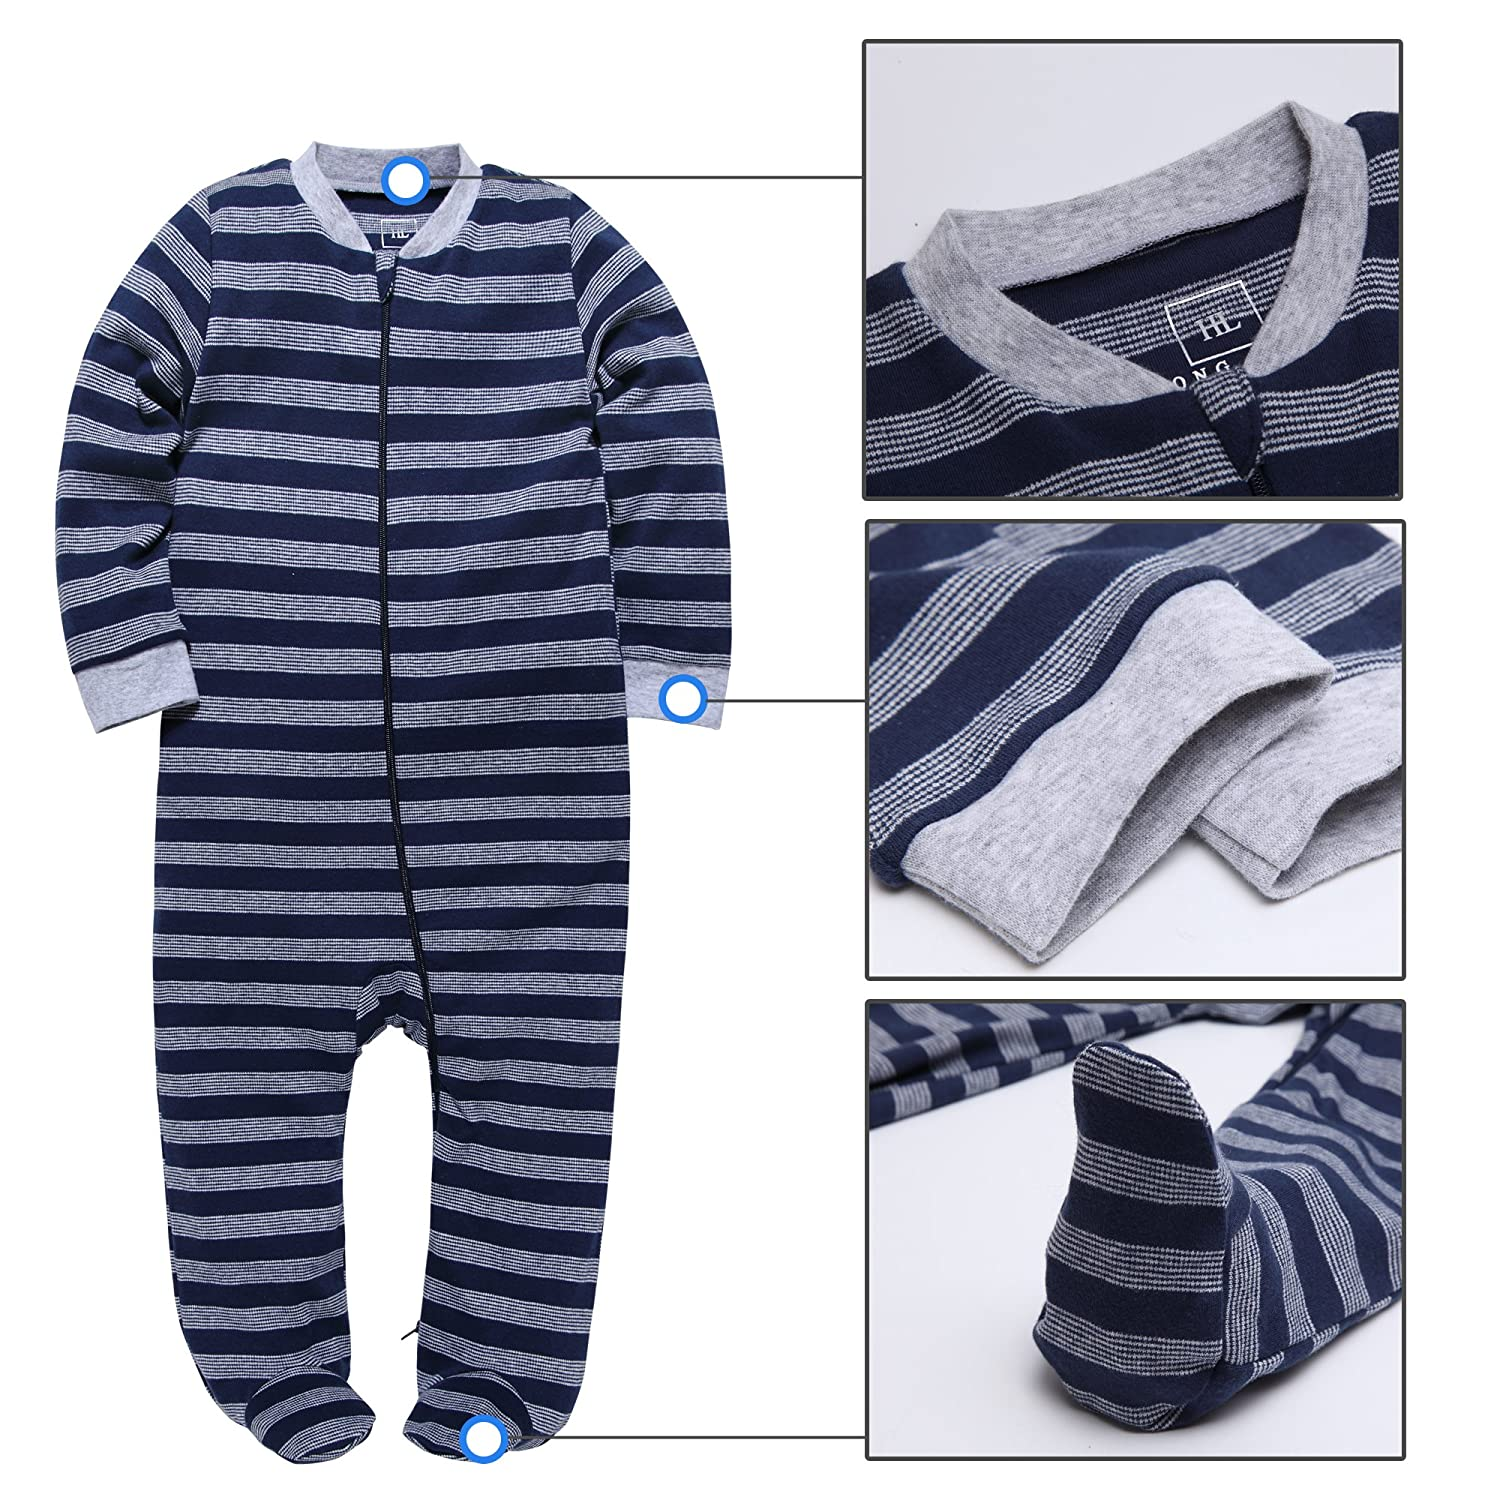 HONGLIN Baby Striped Cotton Pajamas Long Sleeve Spring New Gray and Blue Footie Sleepwear Jumpsuit 3-24 Months /…